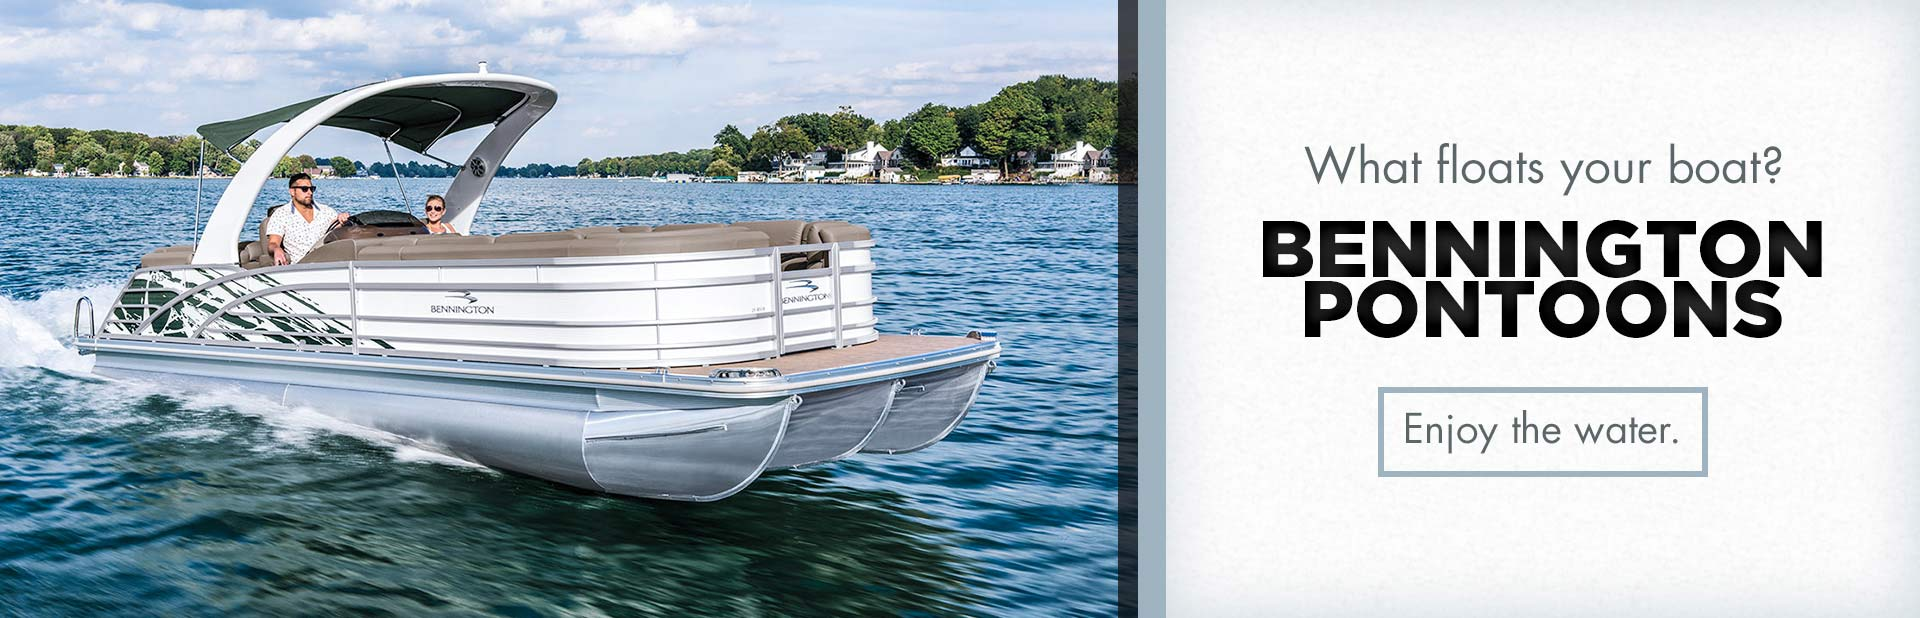 Bennington Pontoons: Click here to view the models.